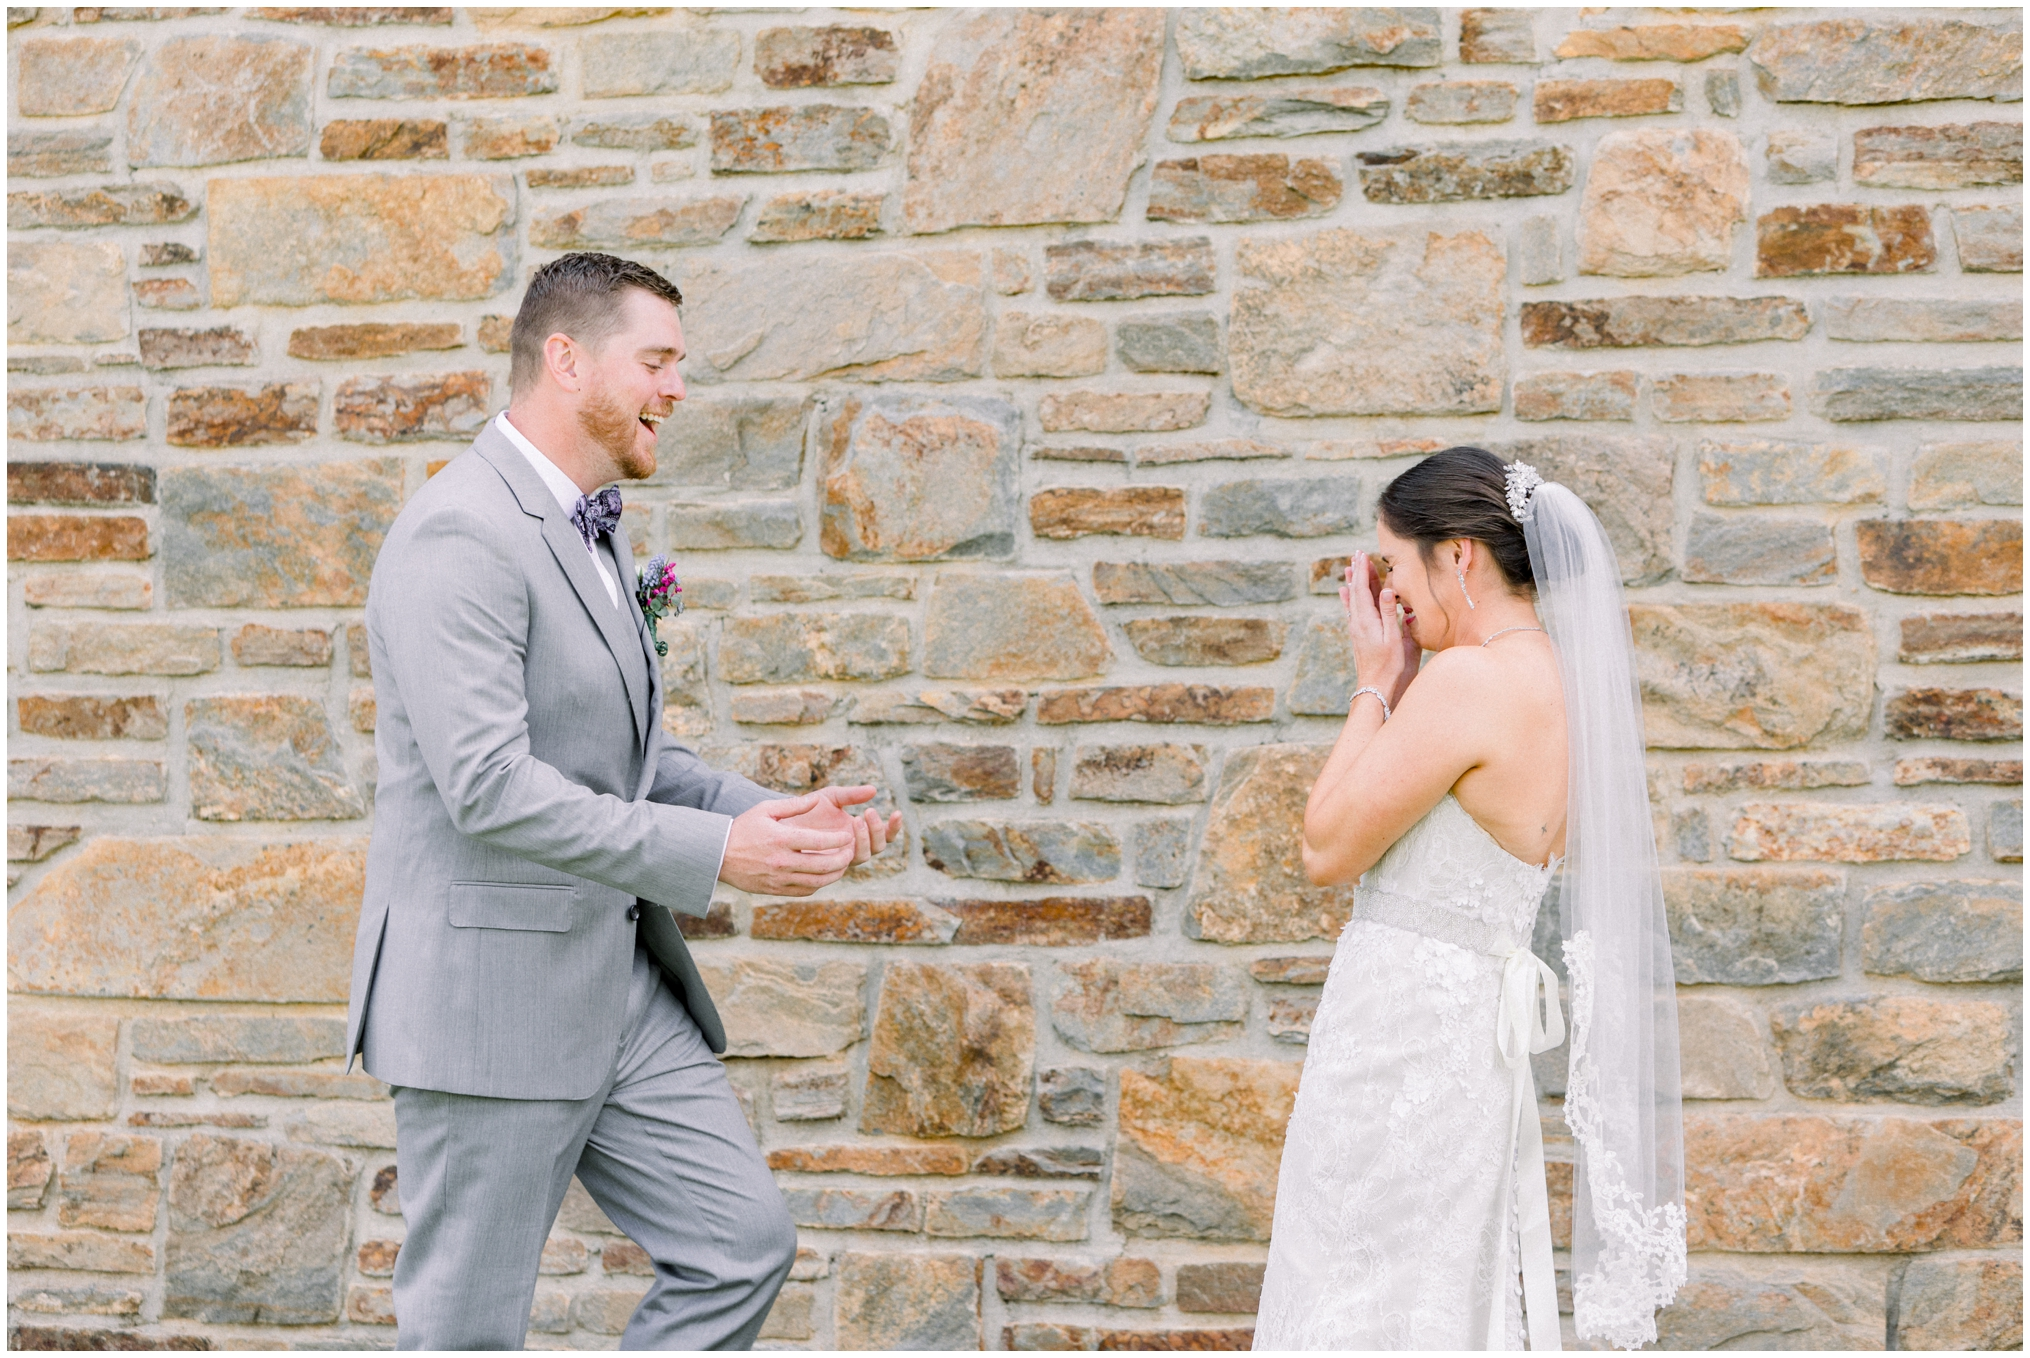 Krista Brackin Photography | April Wedding at The Carriage House at Rockwood Park_0035.jpg